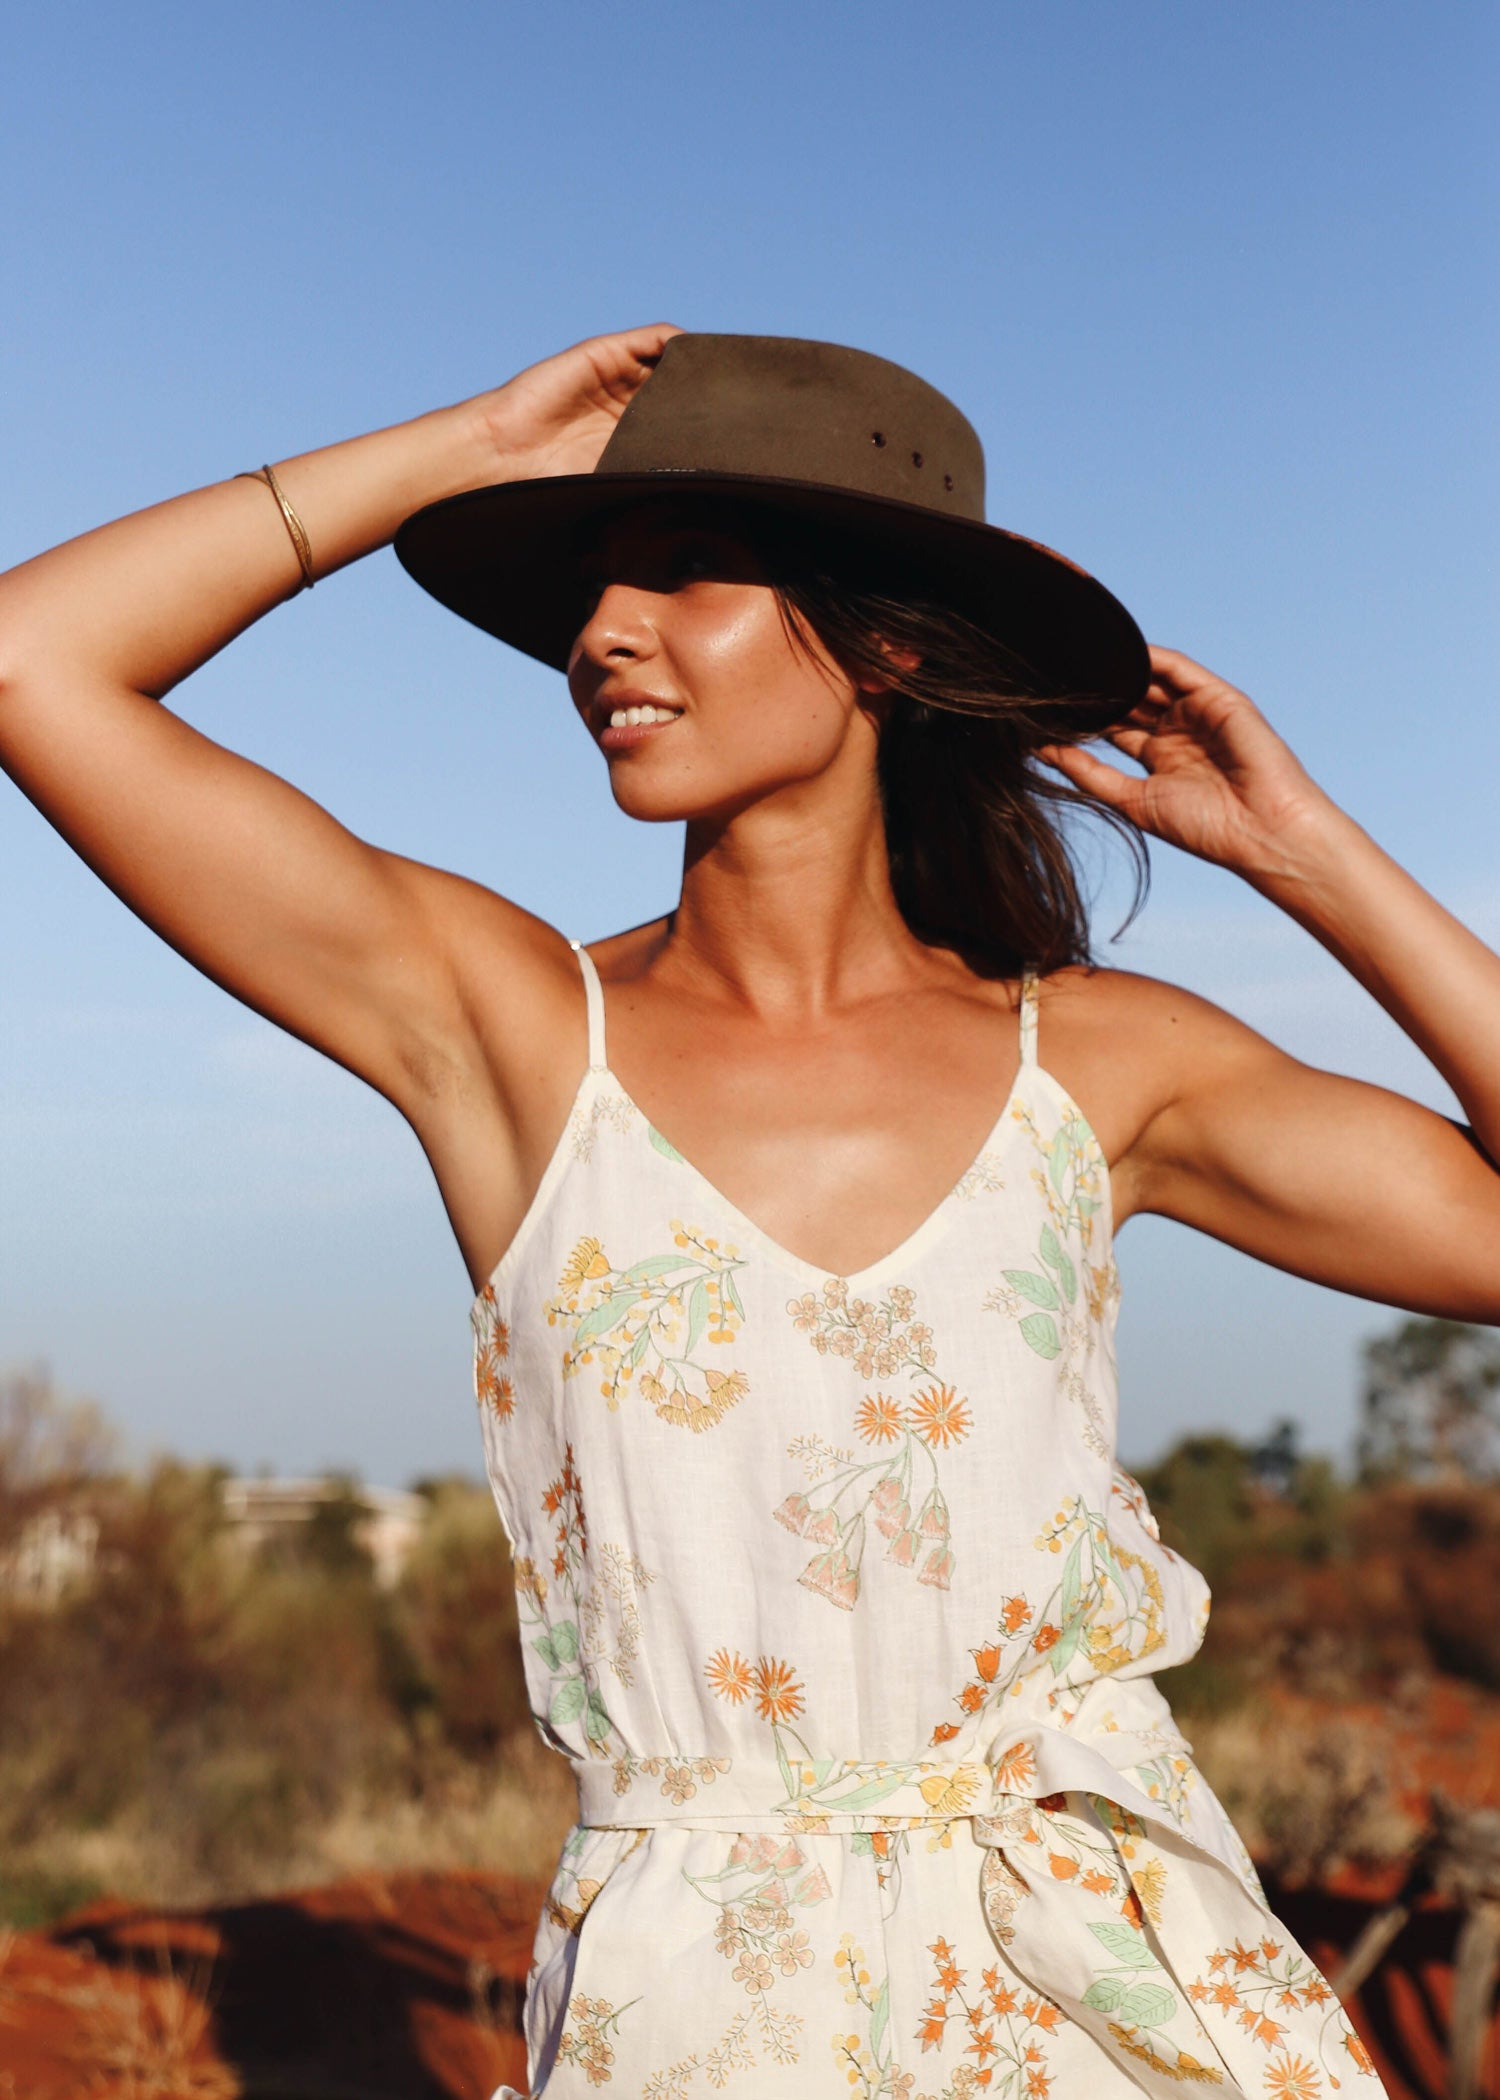 Shop ROVE's WILDFLOWER Vacation Clothing